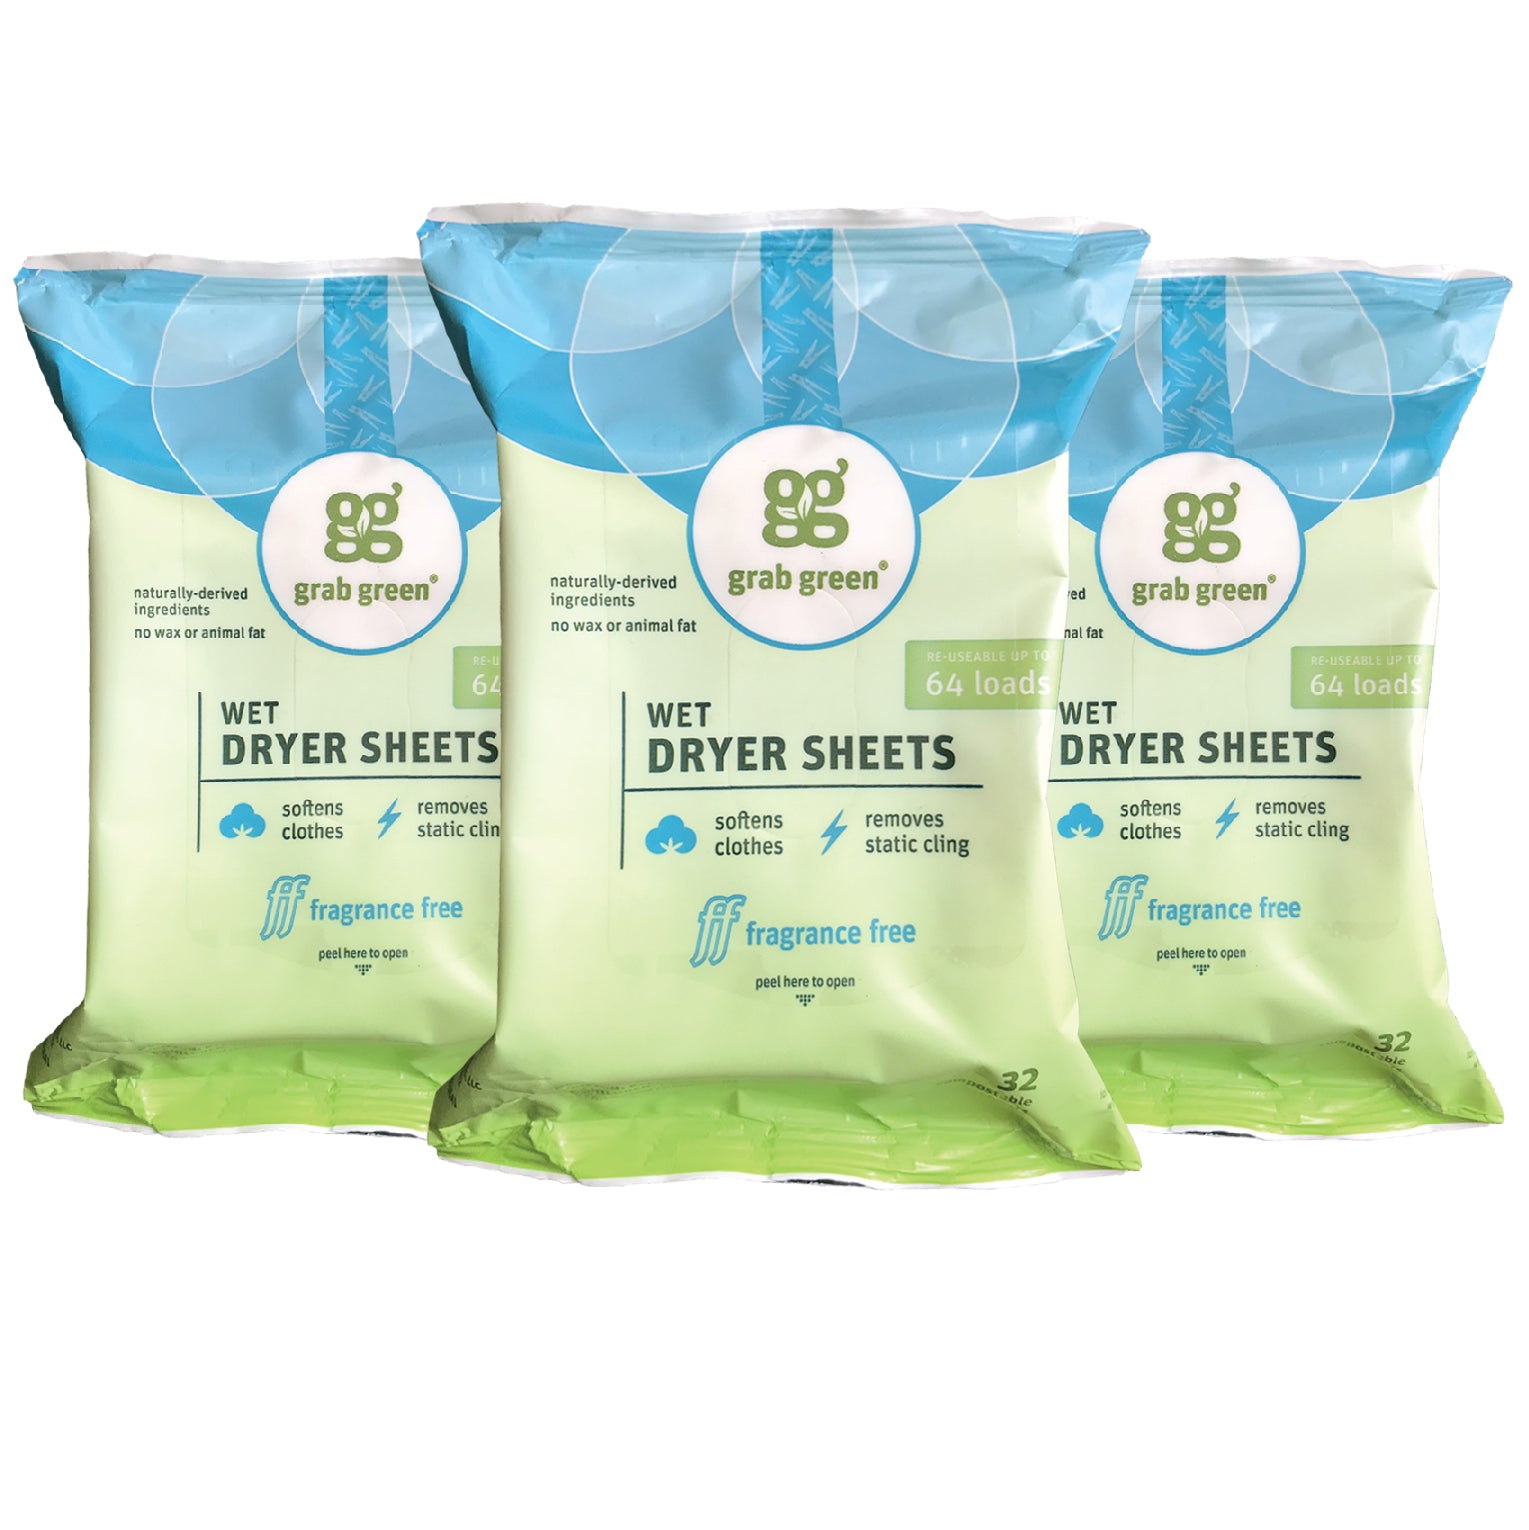 Wet Dryer Sheets - 3 pack